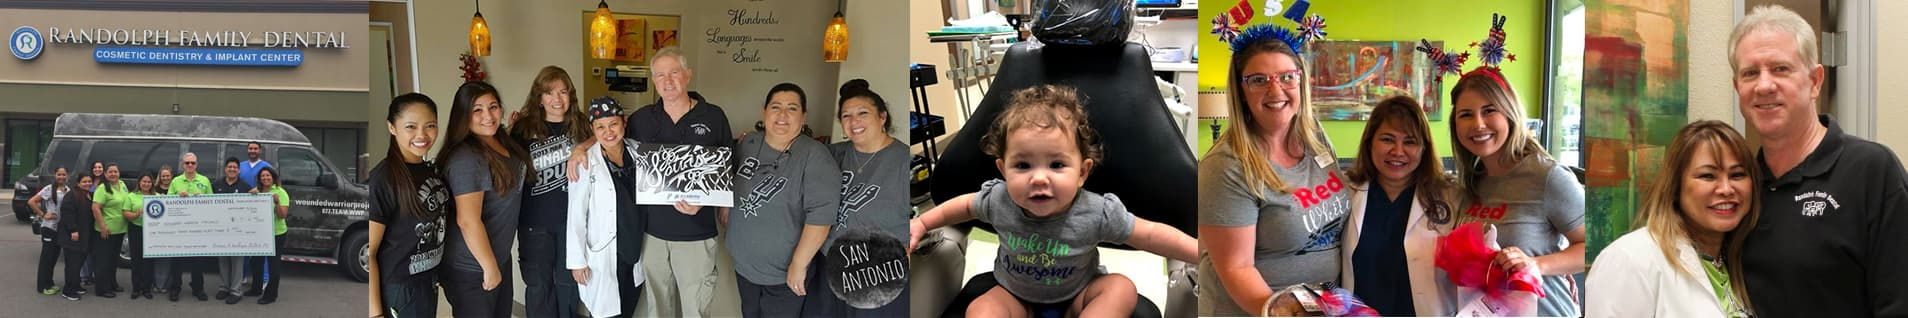 Randolph Family Dental in Schertz, TX